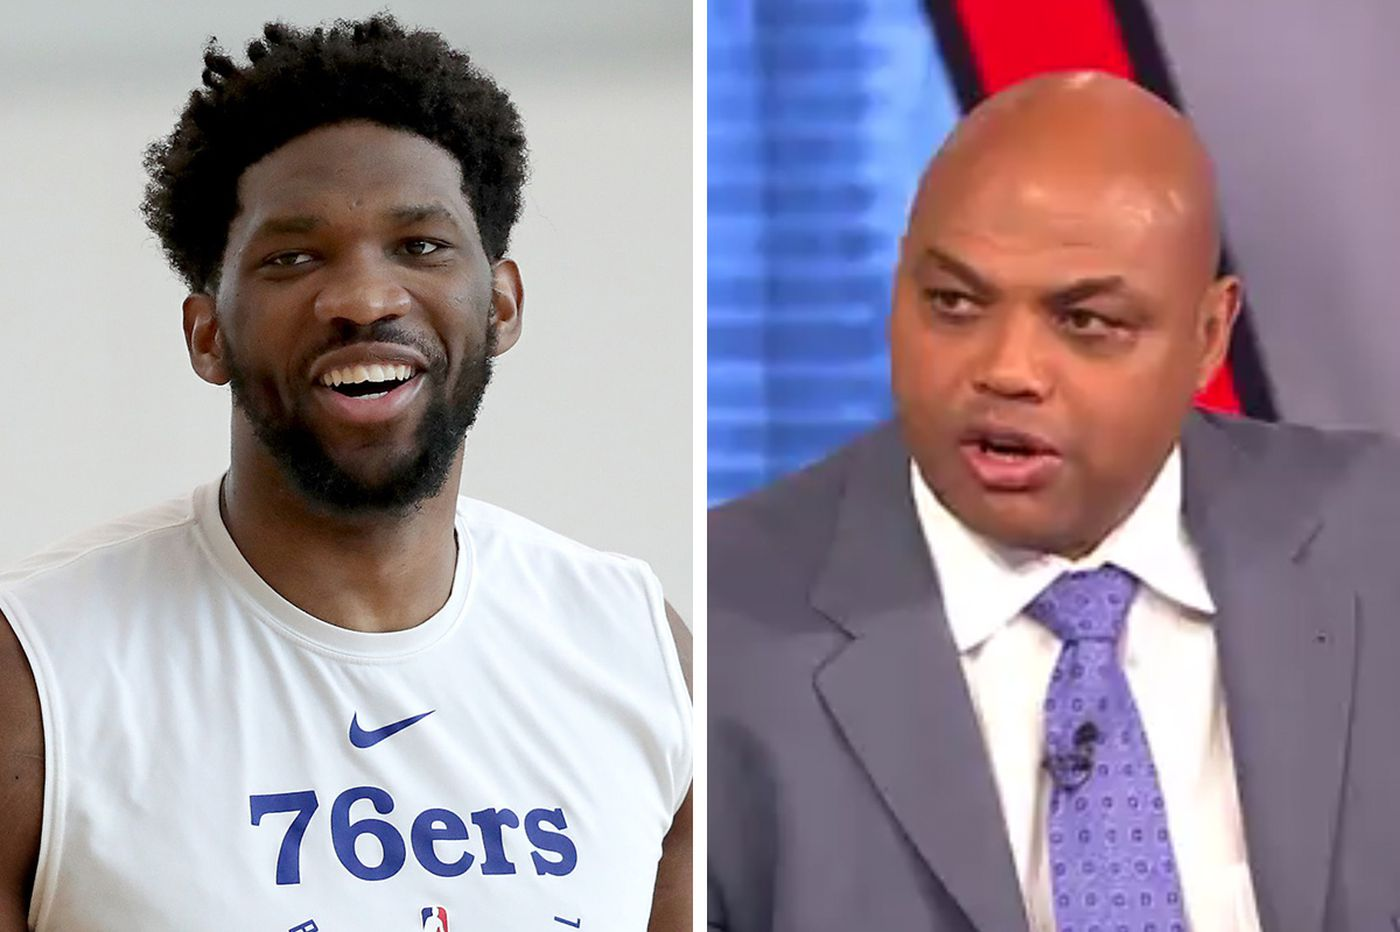 Charles Barkley destroyed the Sixers at halftime. Then they tied an NBA record.